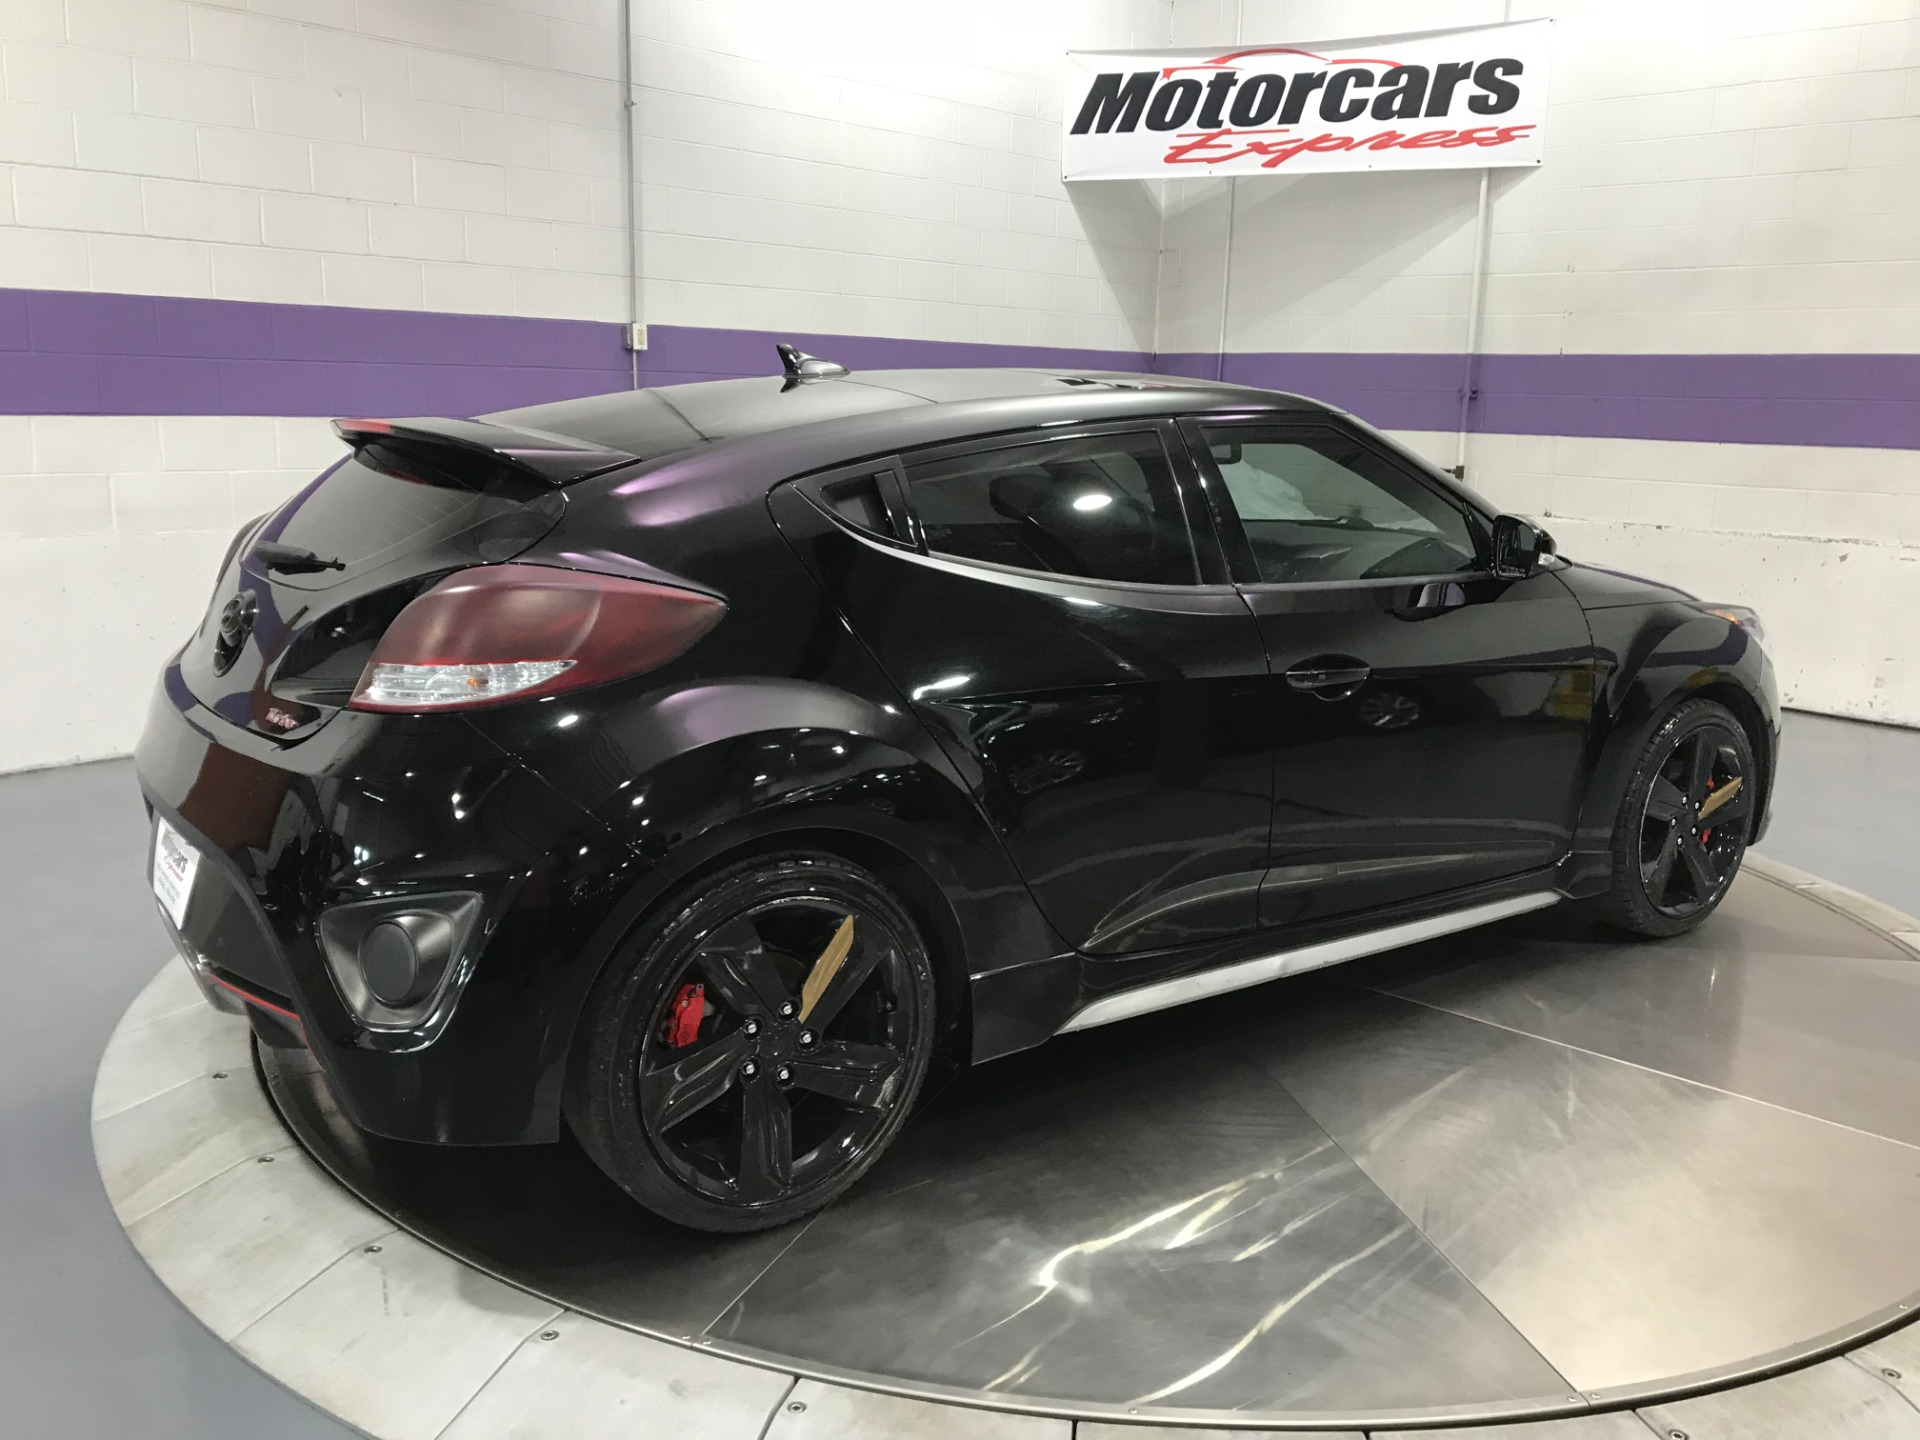 2013 Hyundai Veloster Turbo Stock 24522 For Sale Near